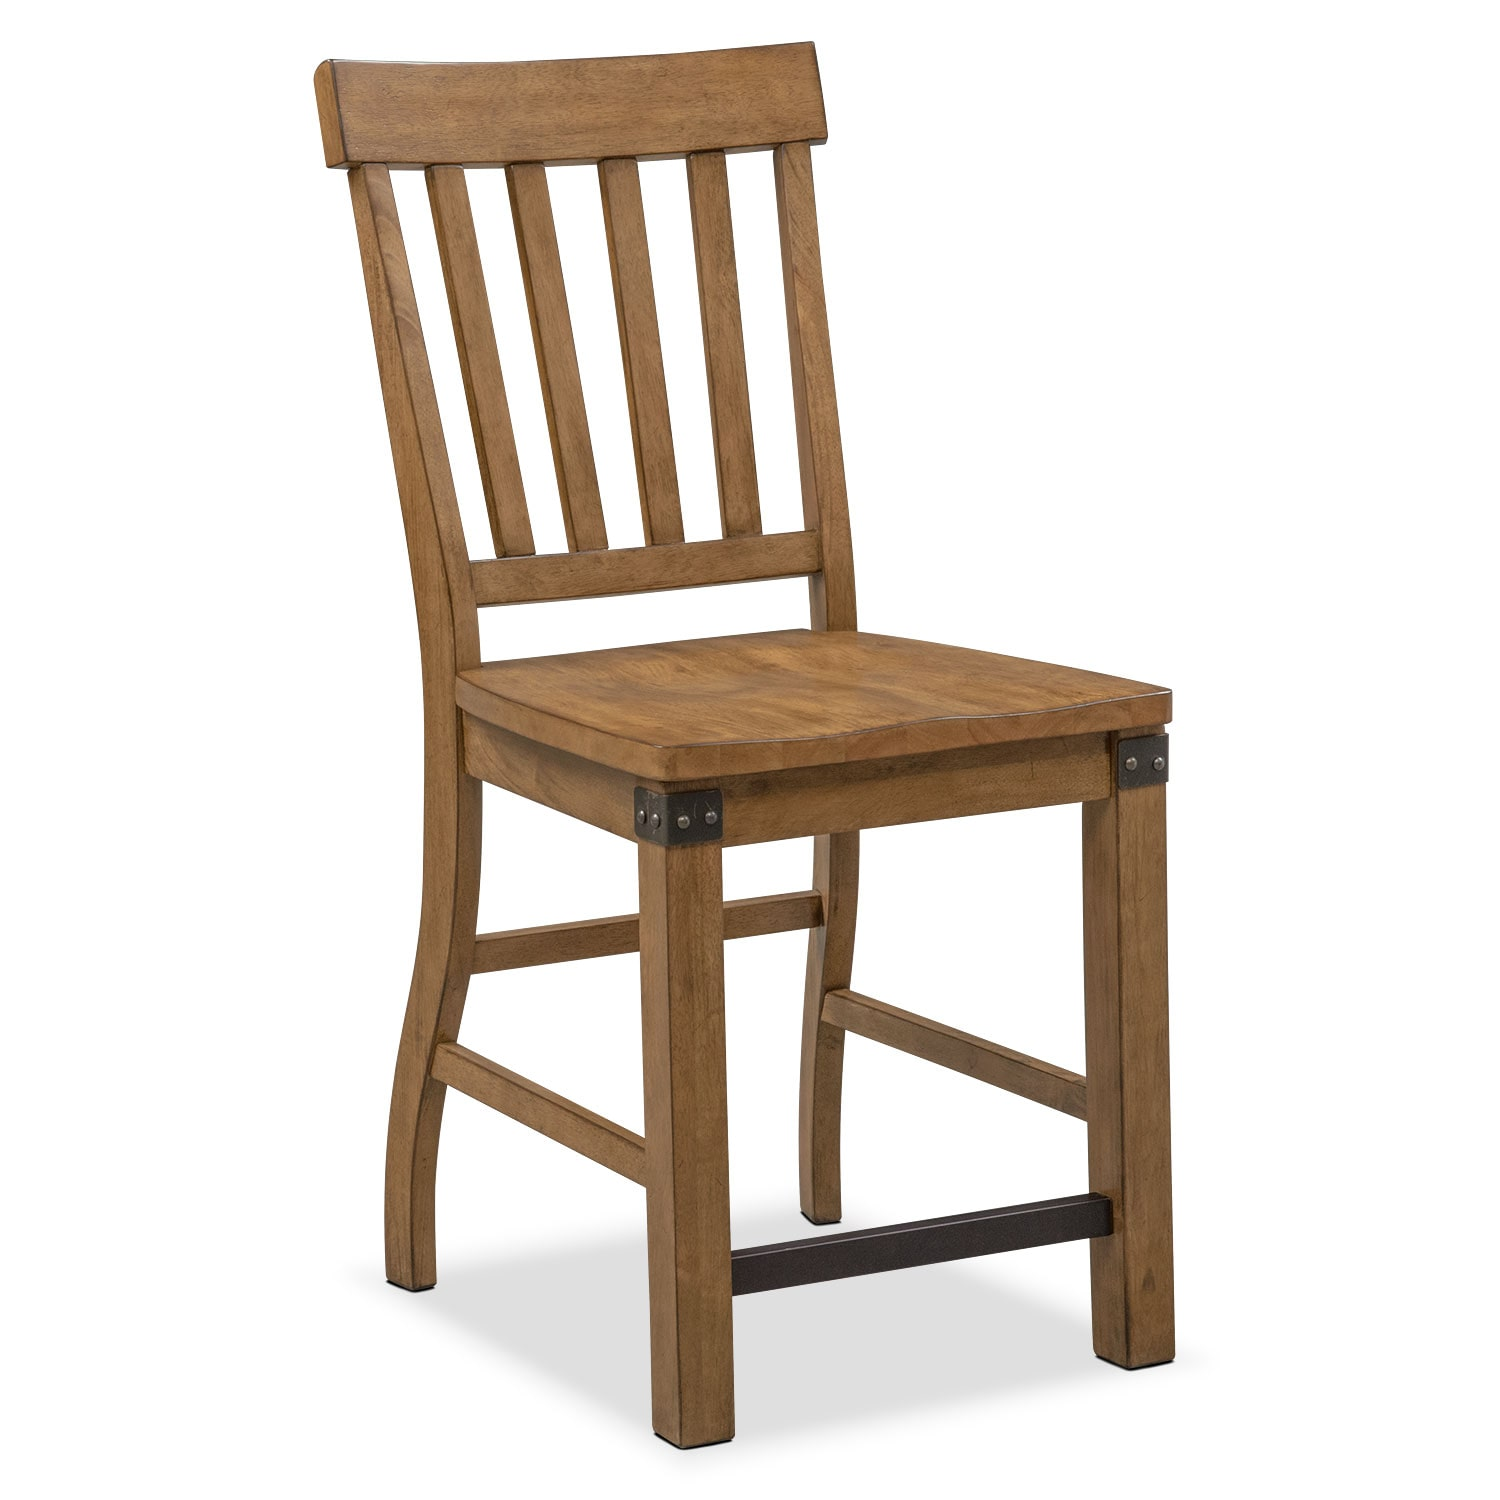 [Salem Counter-Height Chair - Pecan]